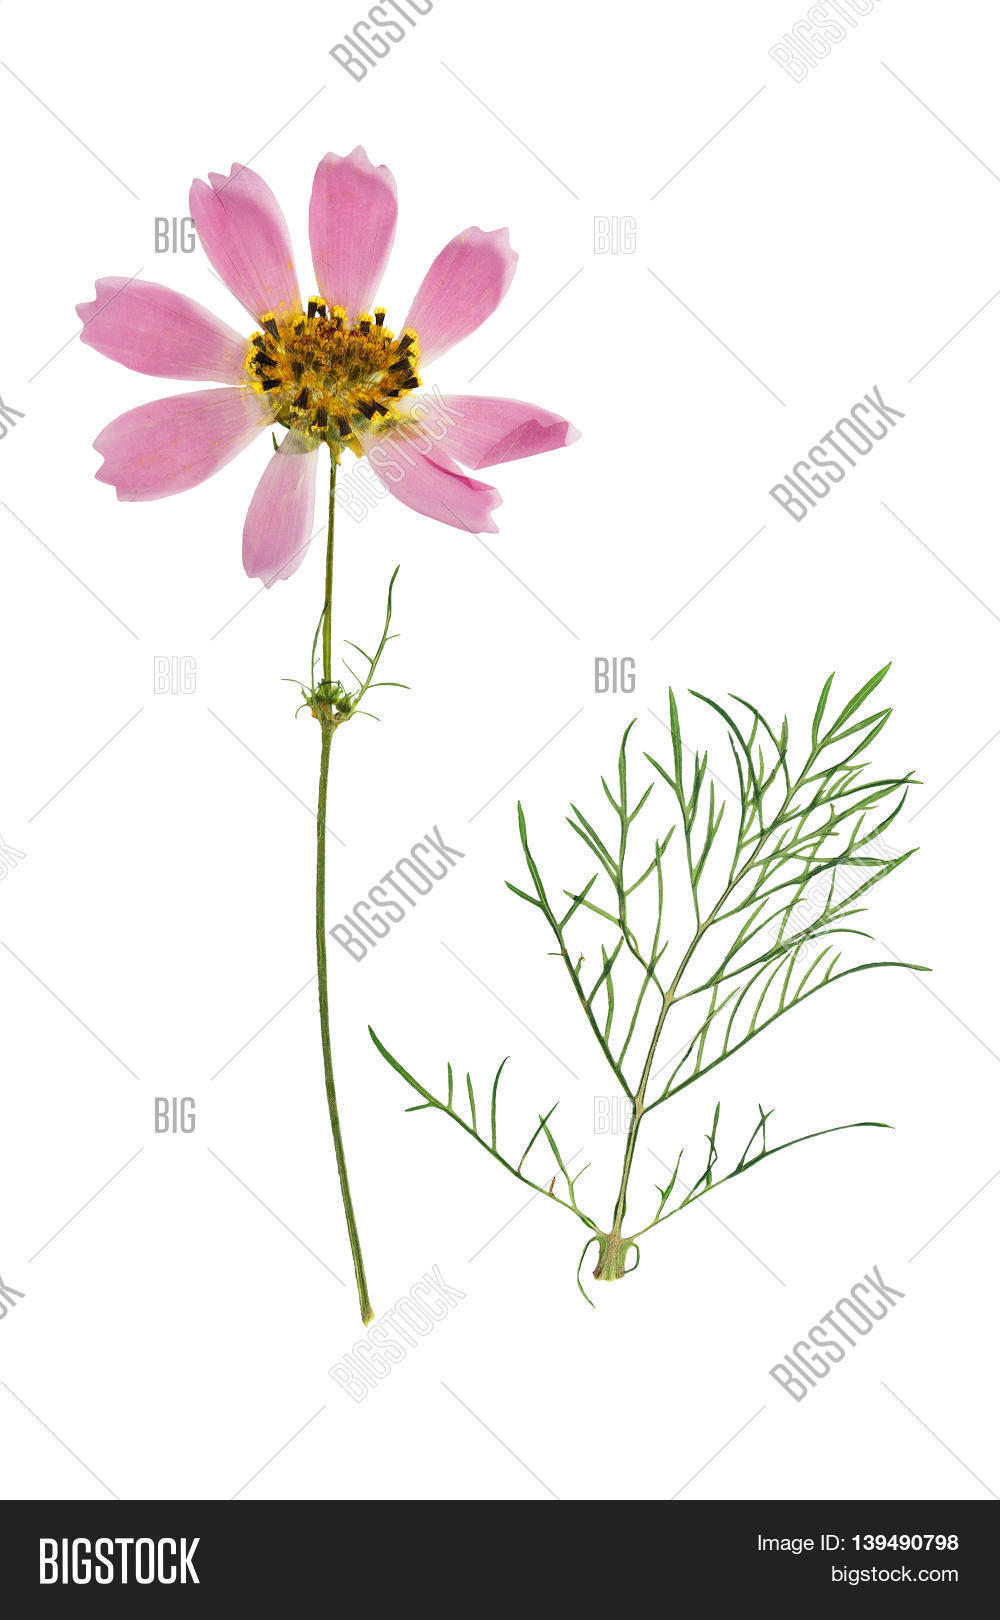 How to scrapbook dried flowers - Pressed And Dried Flowers Coreopsis With Green Leaves Isolated On White Background For Use